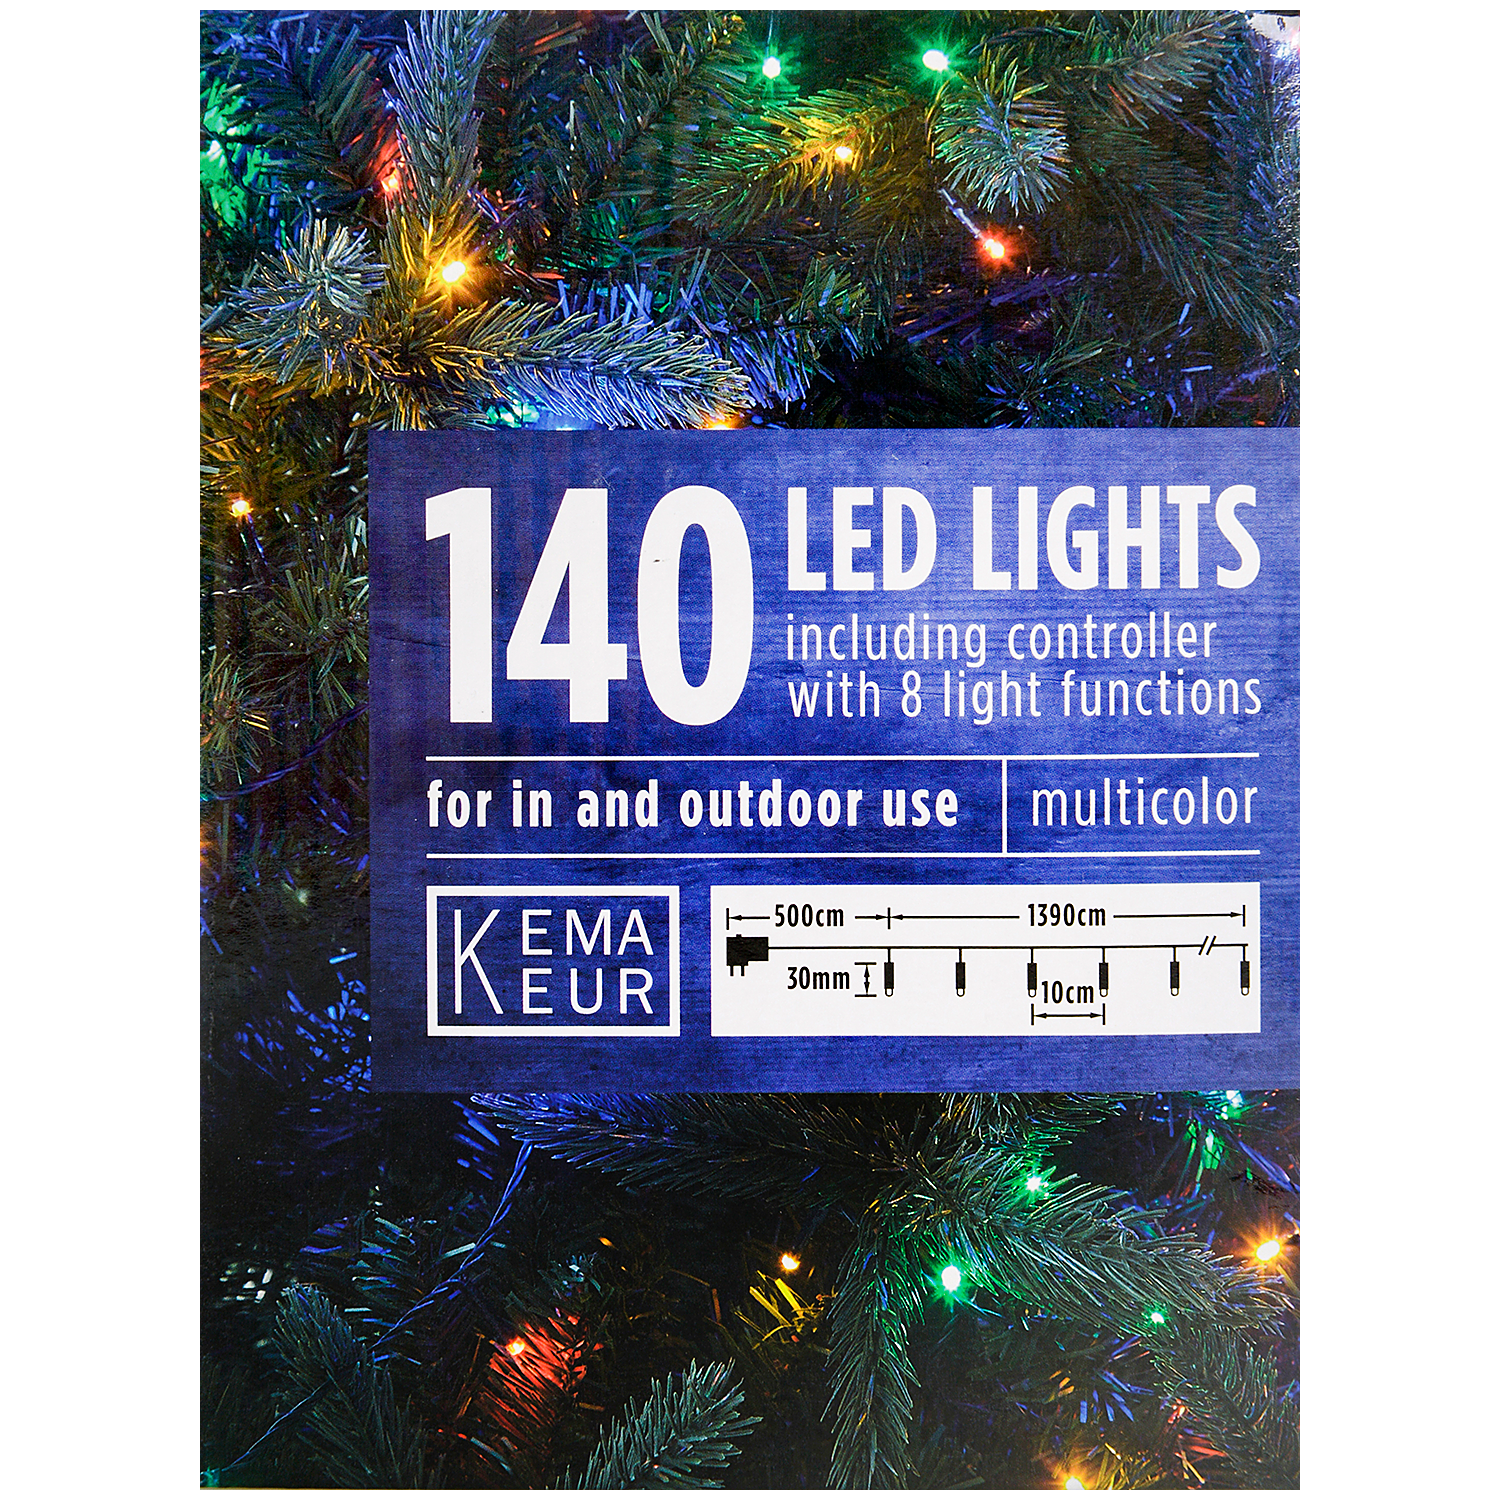 Kerstverlichting 140 ledlampjes | Action.com